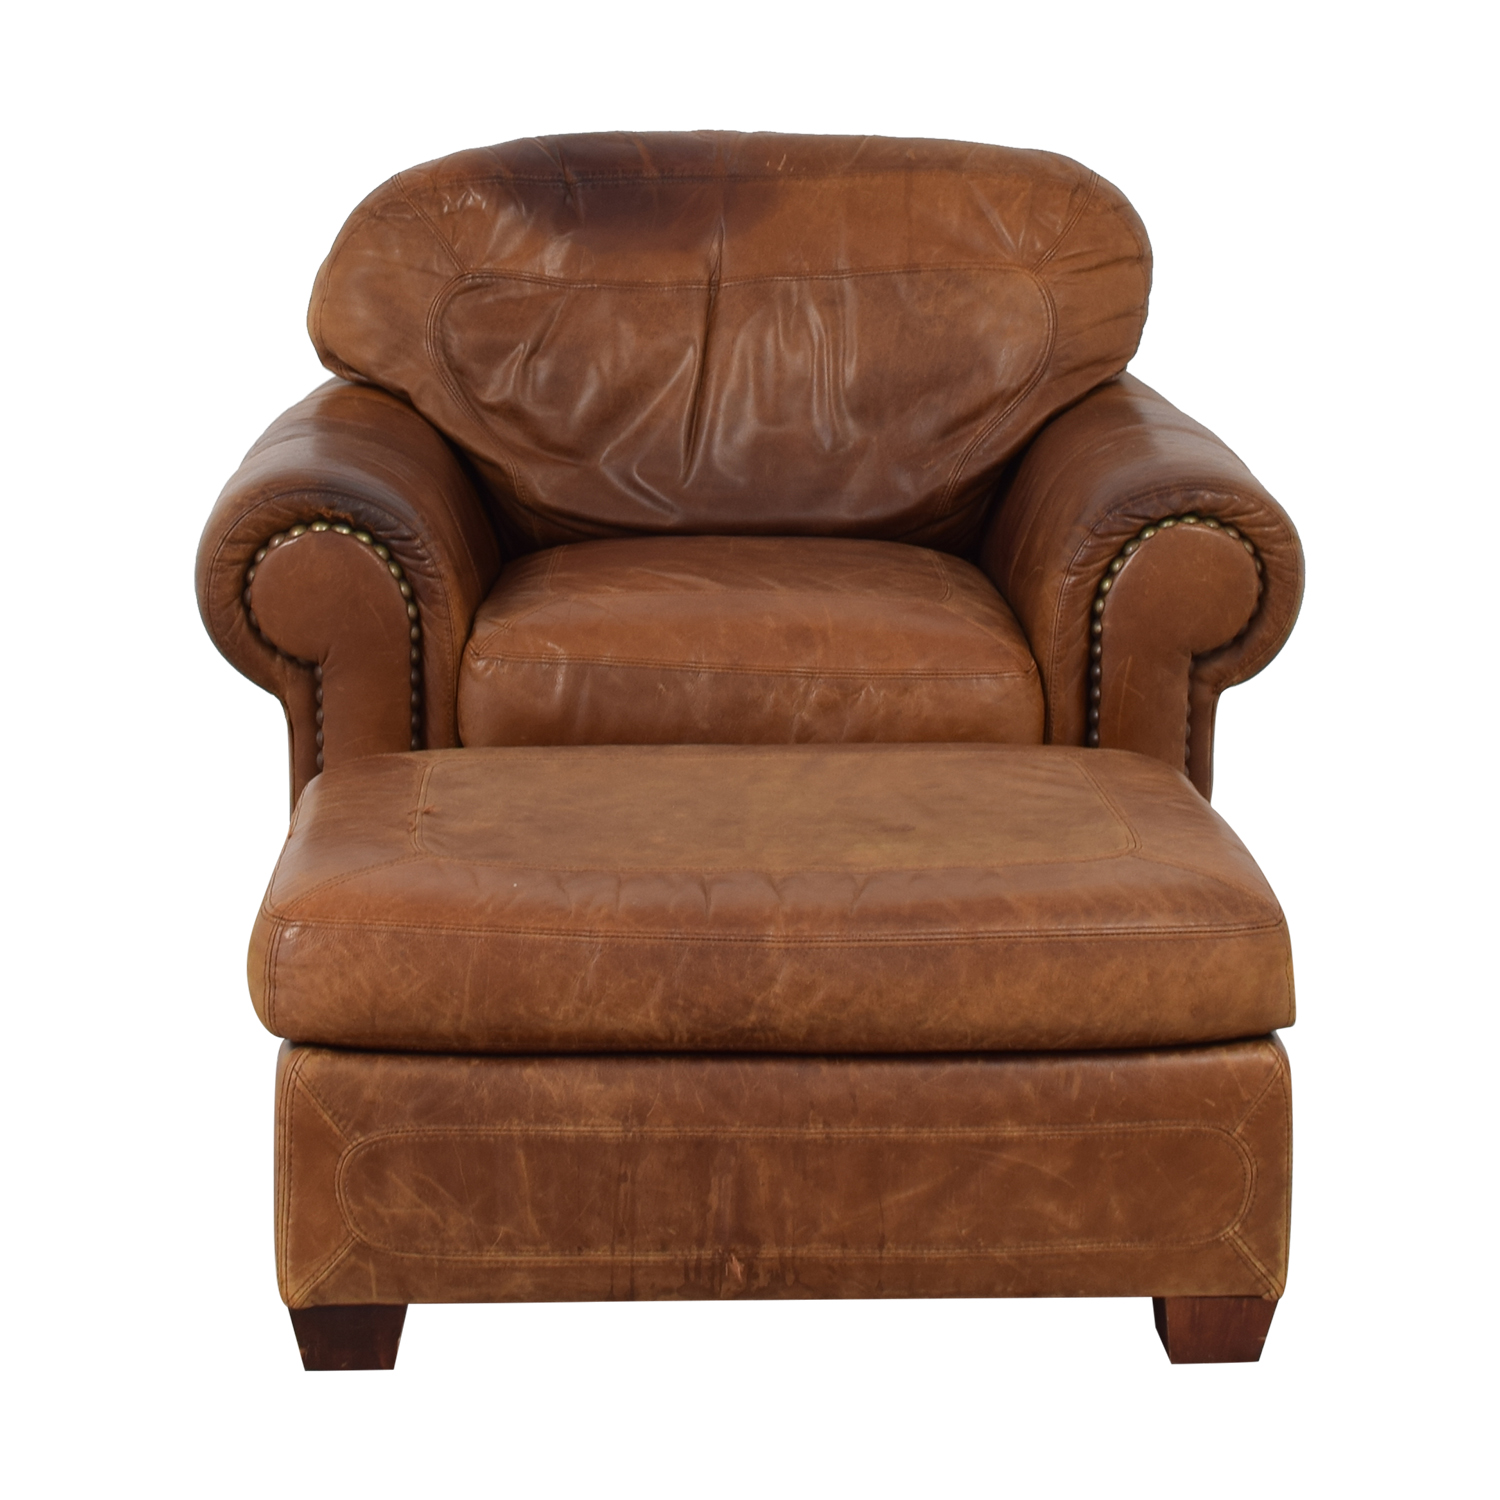 69 Off Stickley Furniture Stickley Cibola Brown Leather Armchair